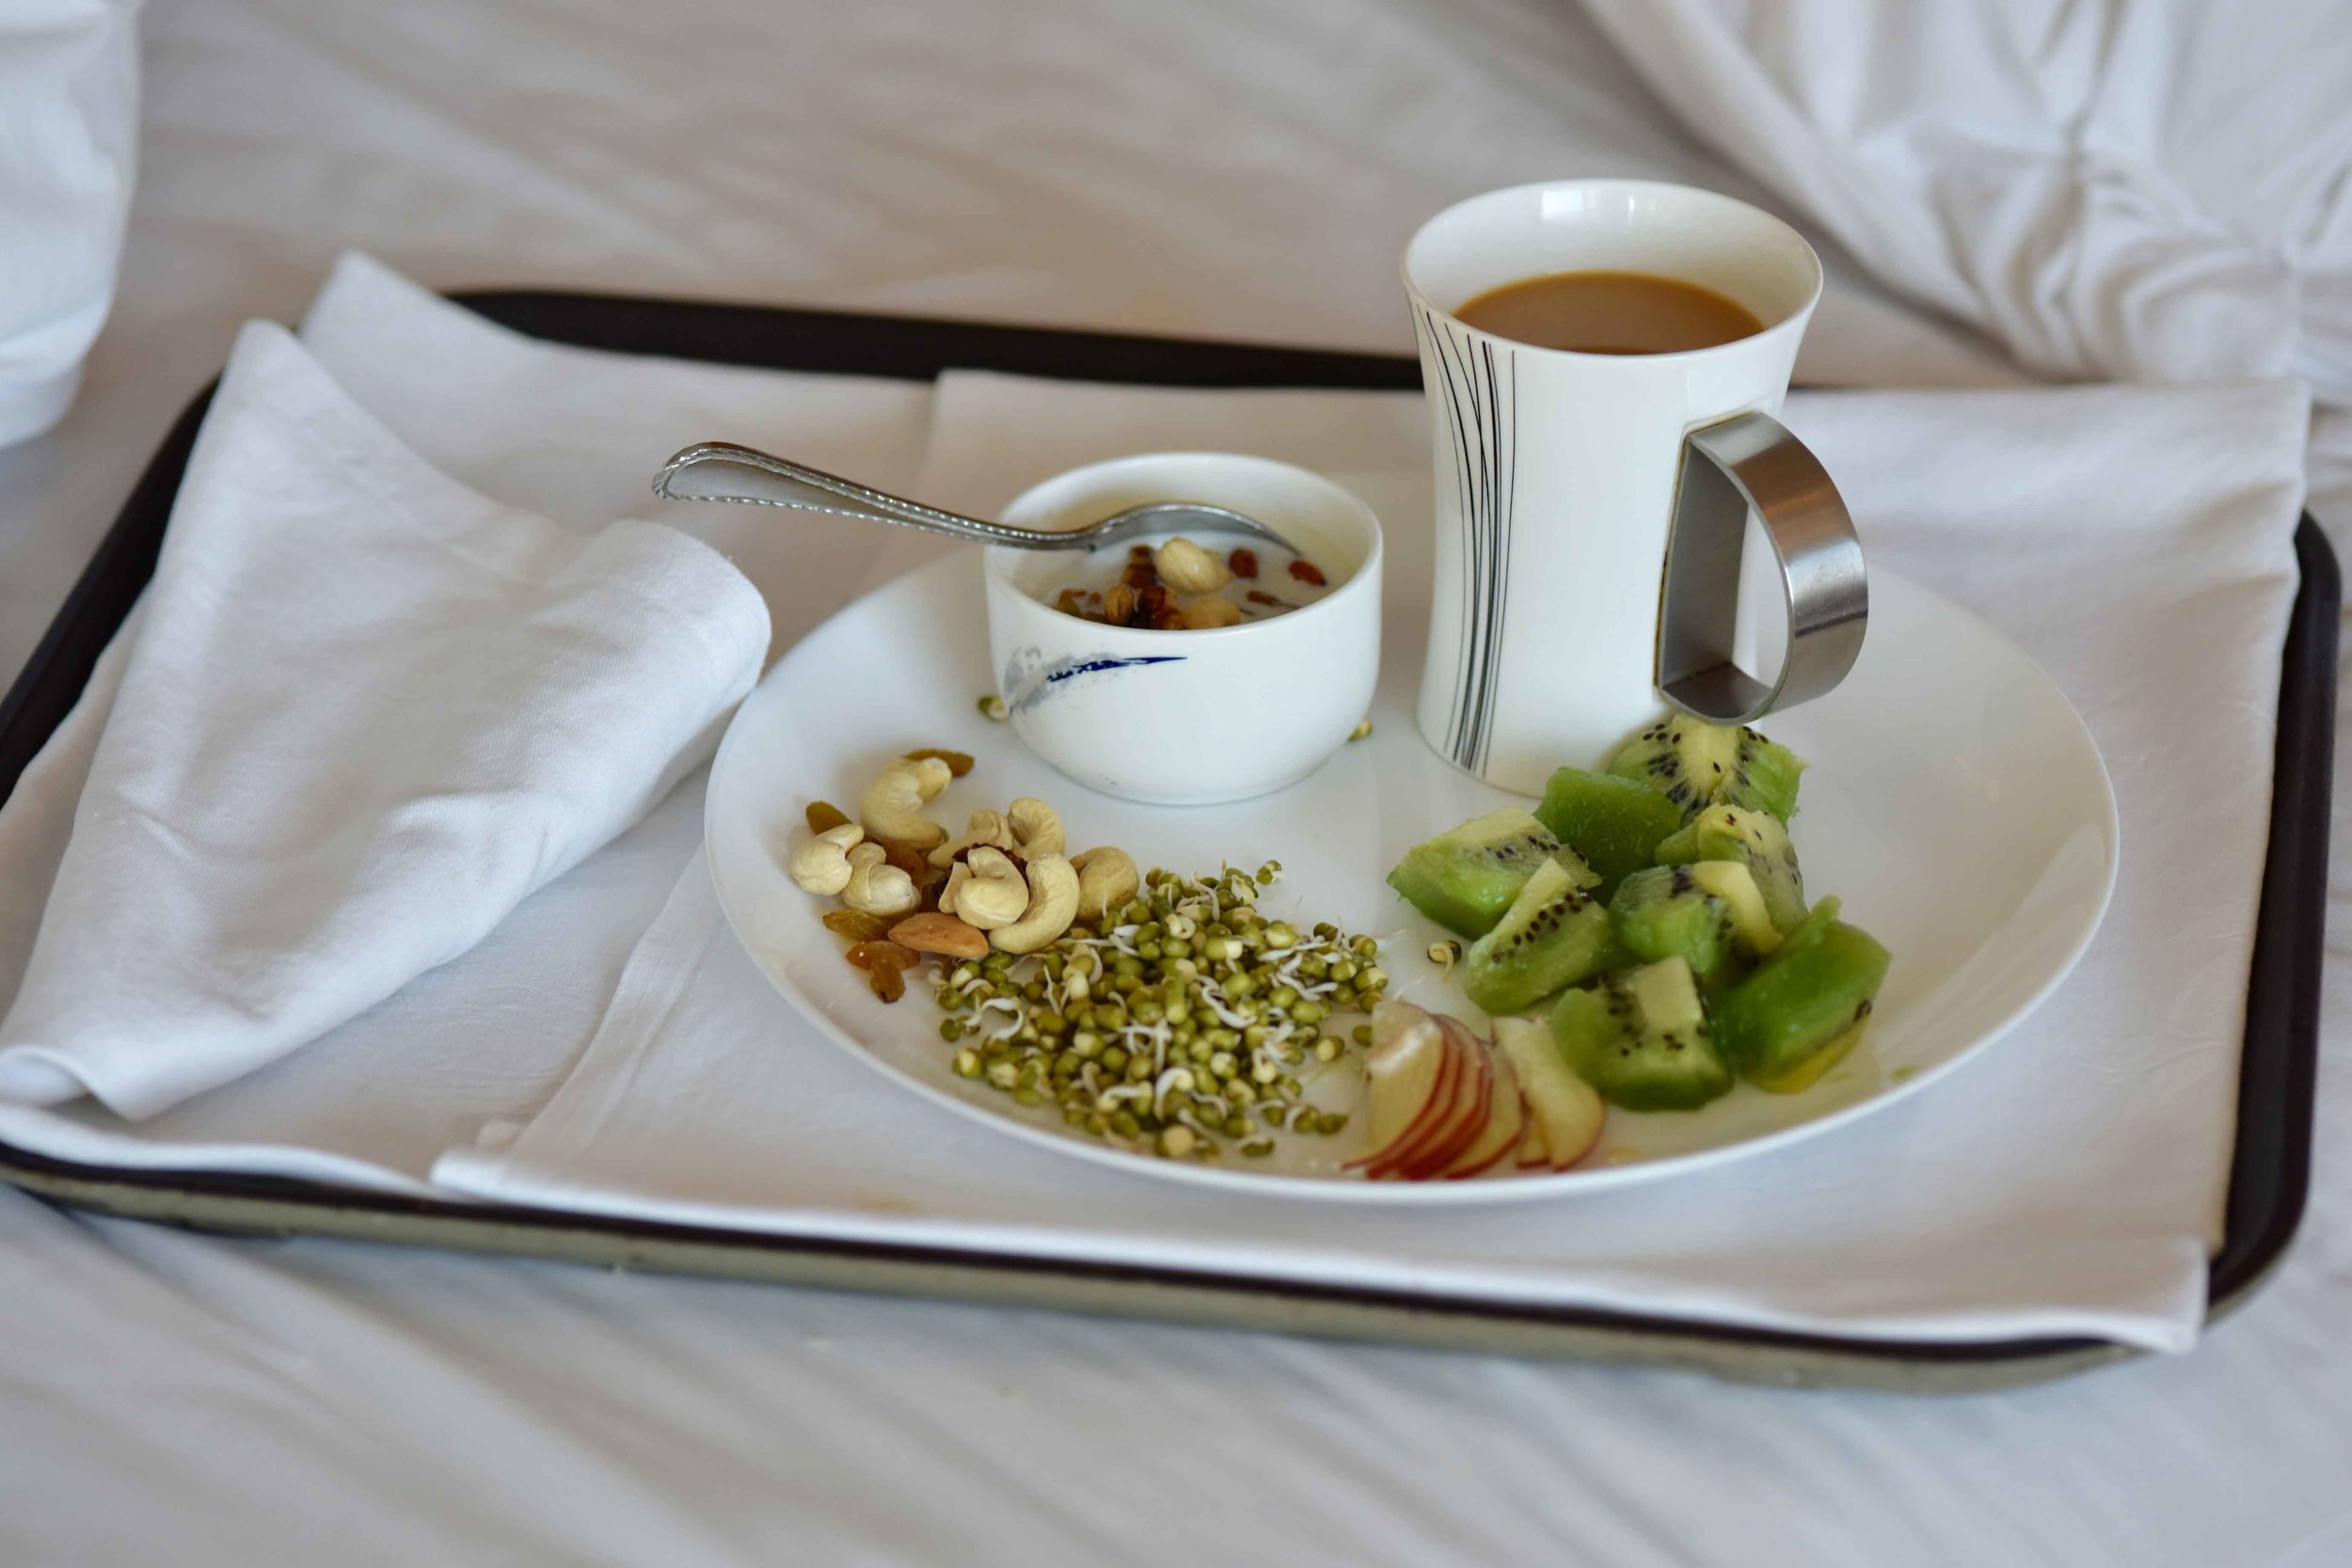 Room service, Radisson Blu Hotel, Ranchi, India. Image@thingstodot.com